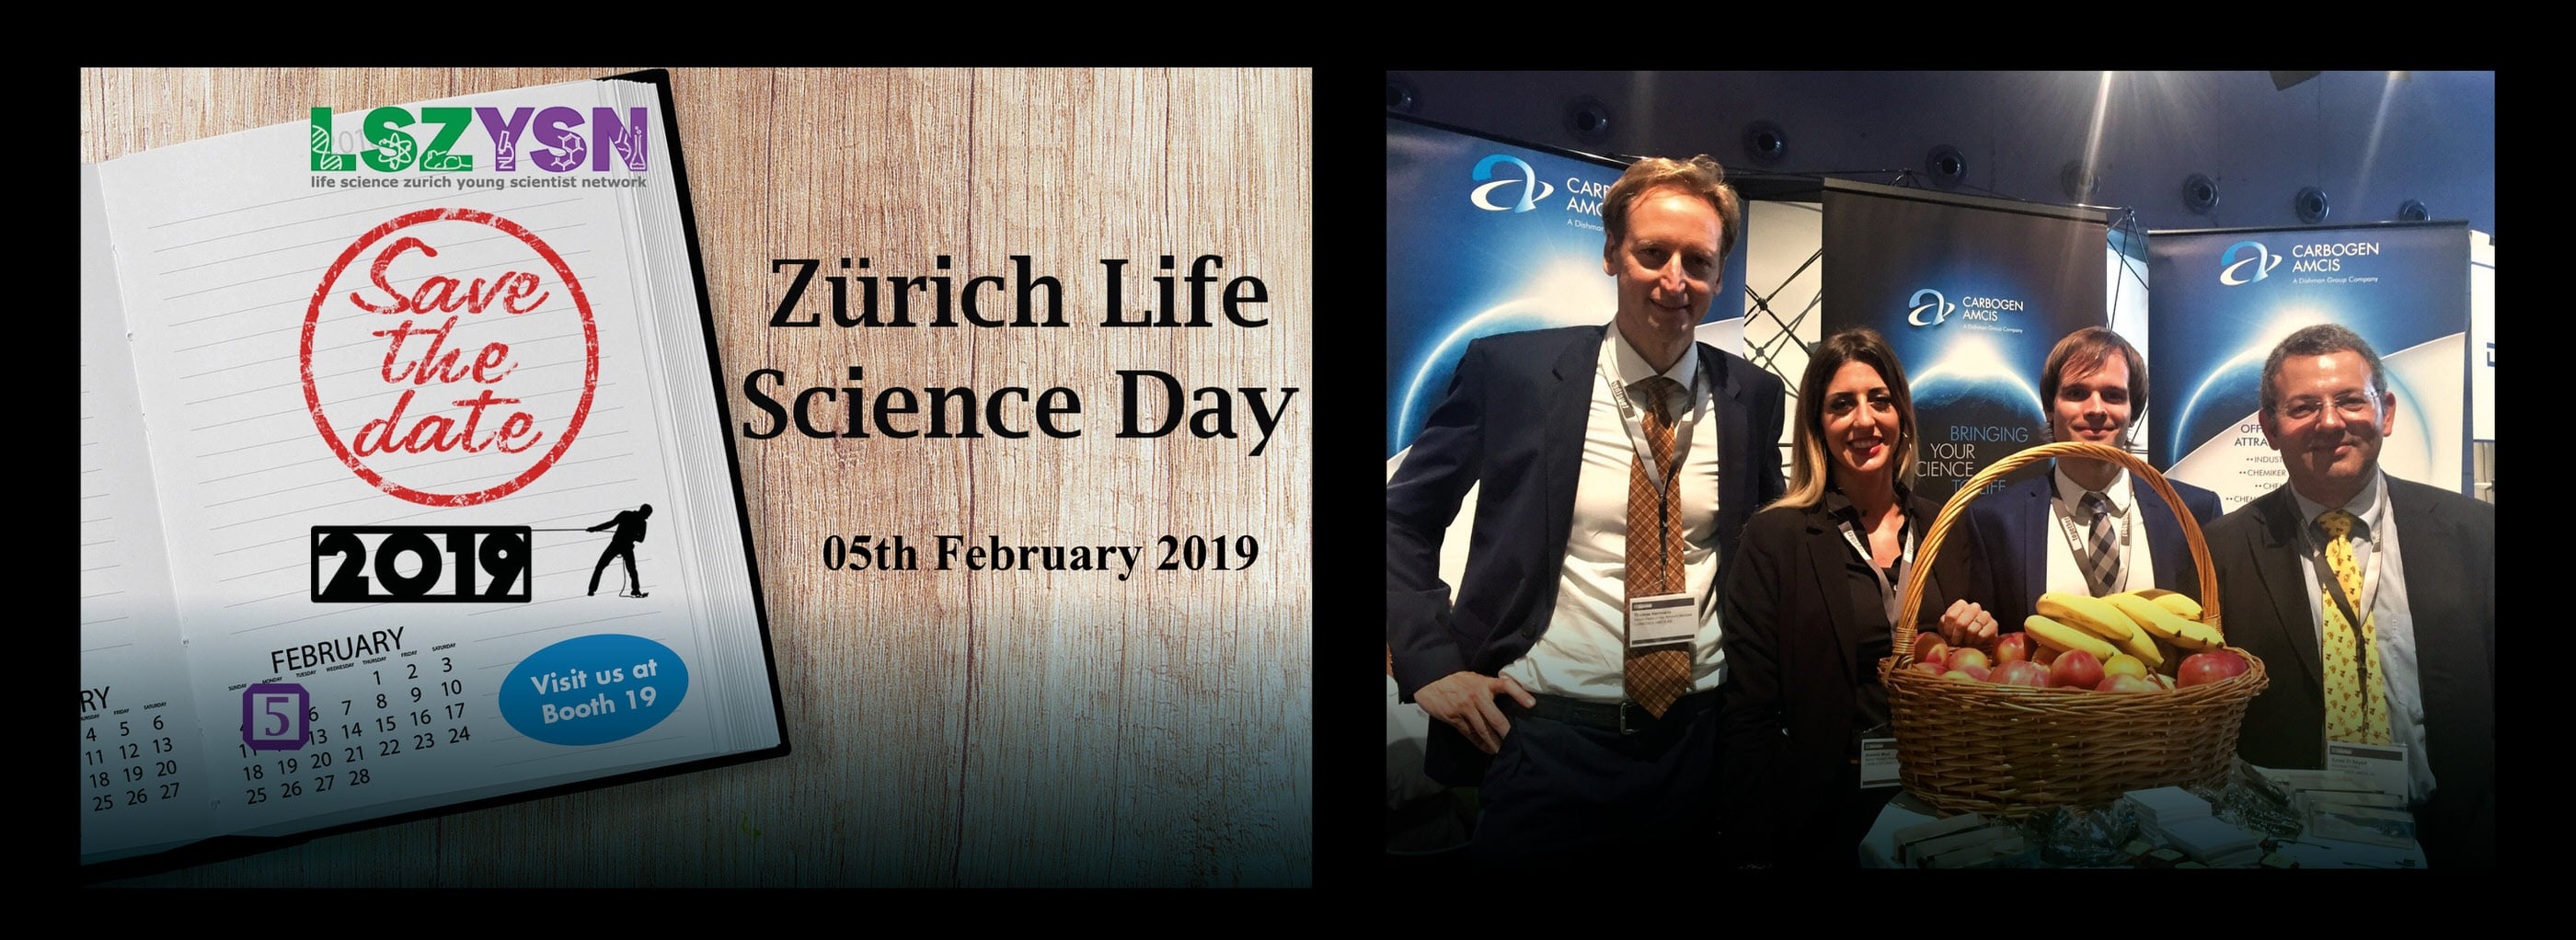 Zrich-Life-Science-Day2